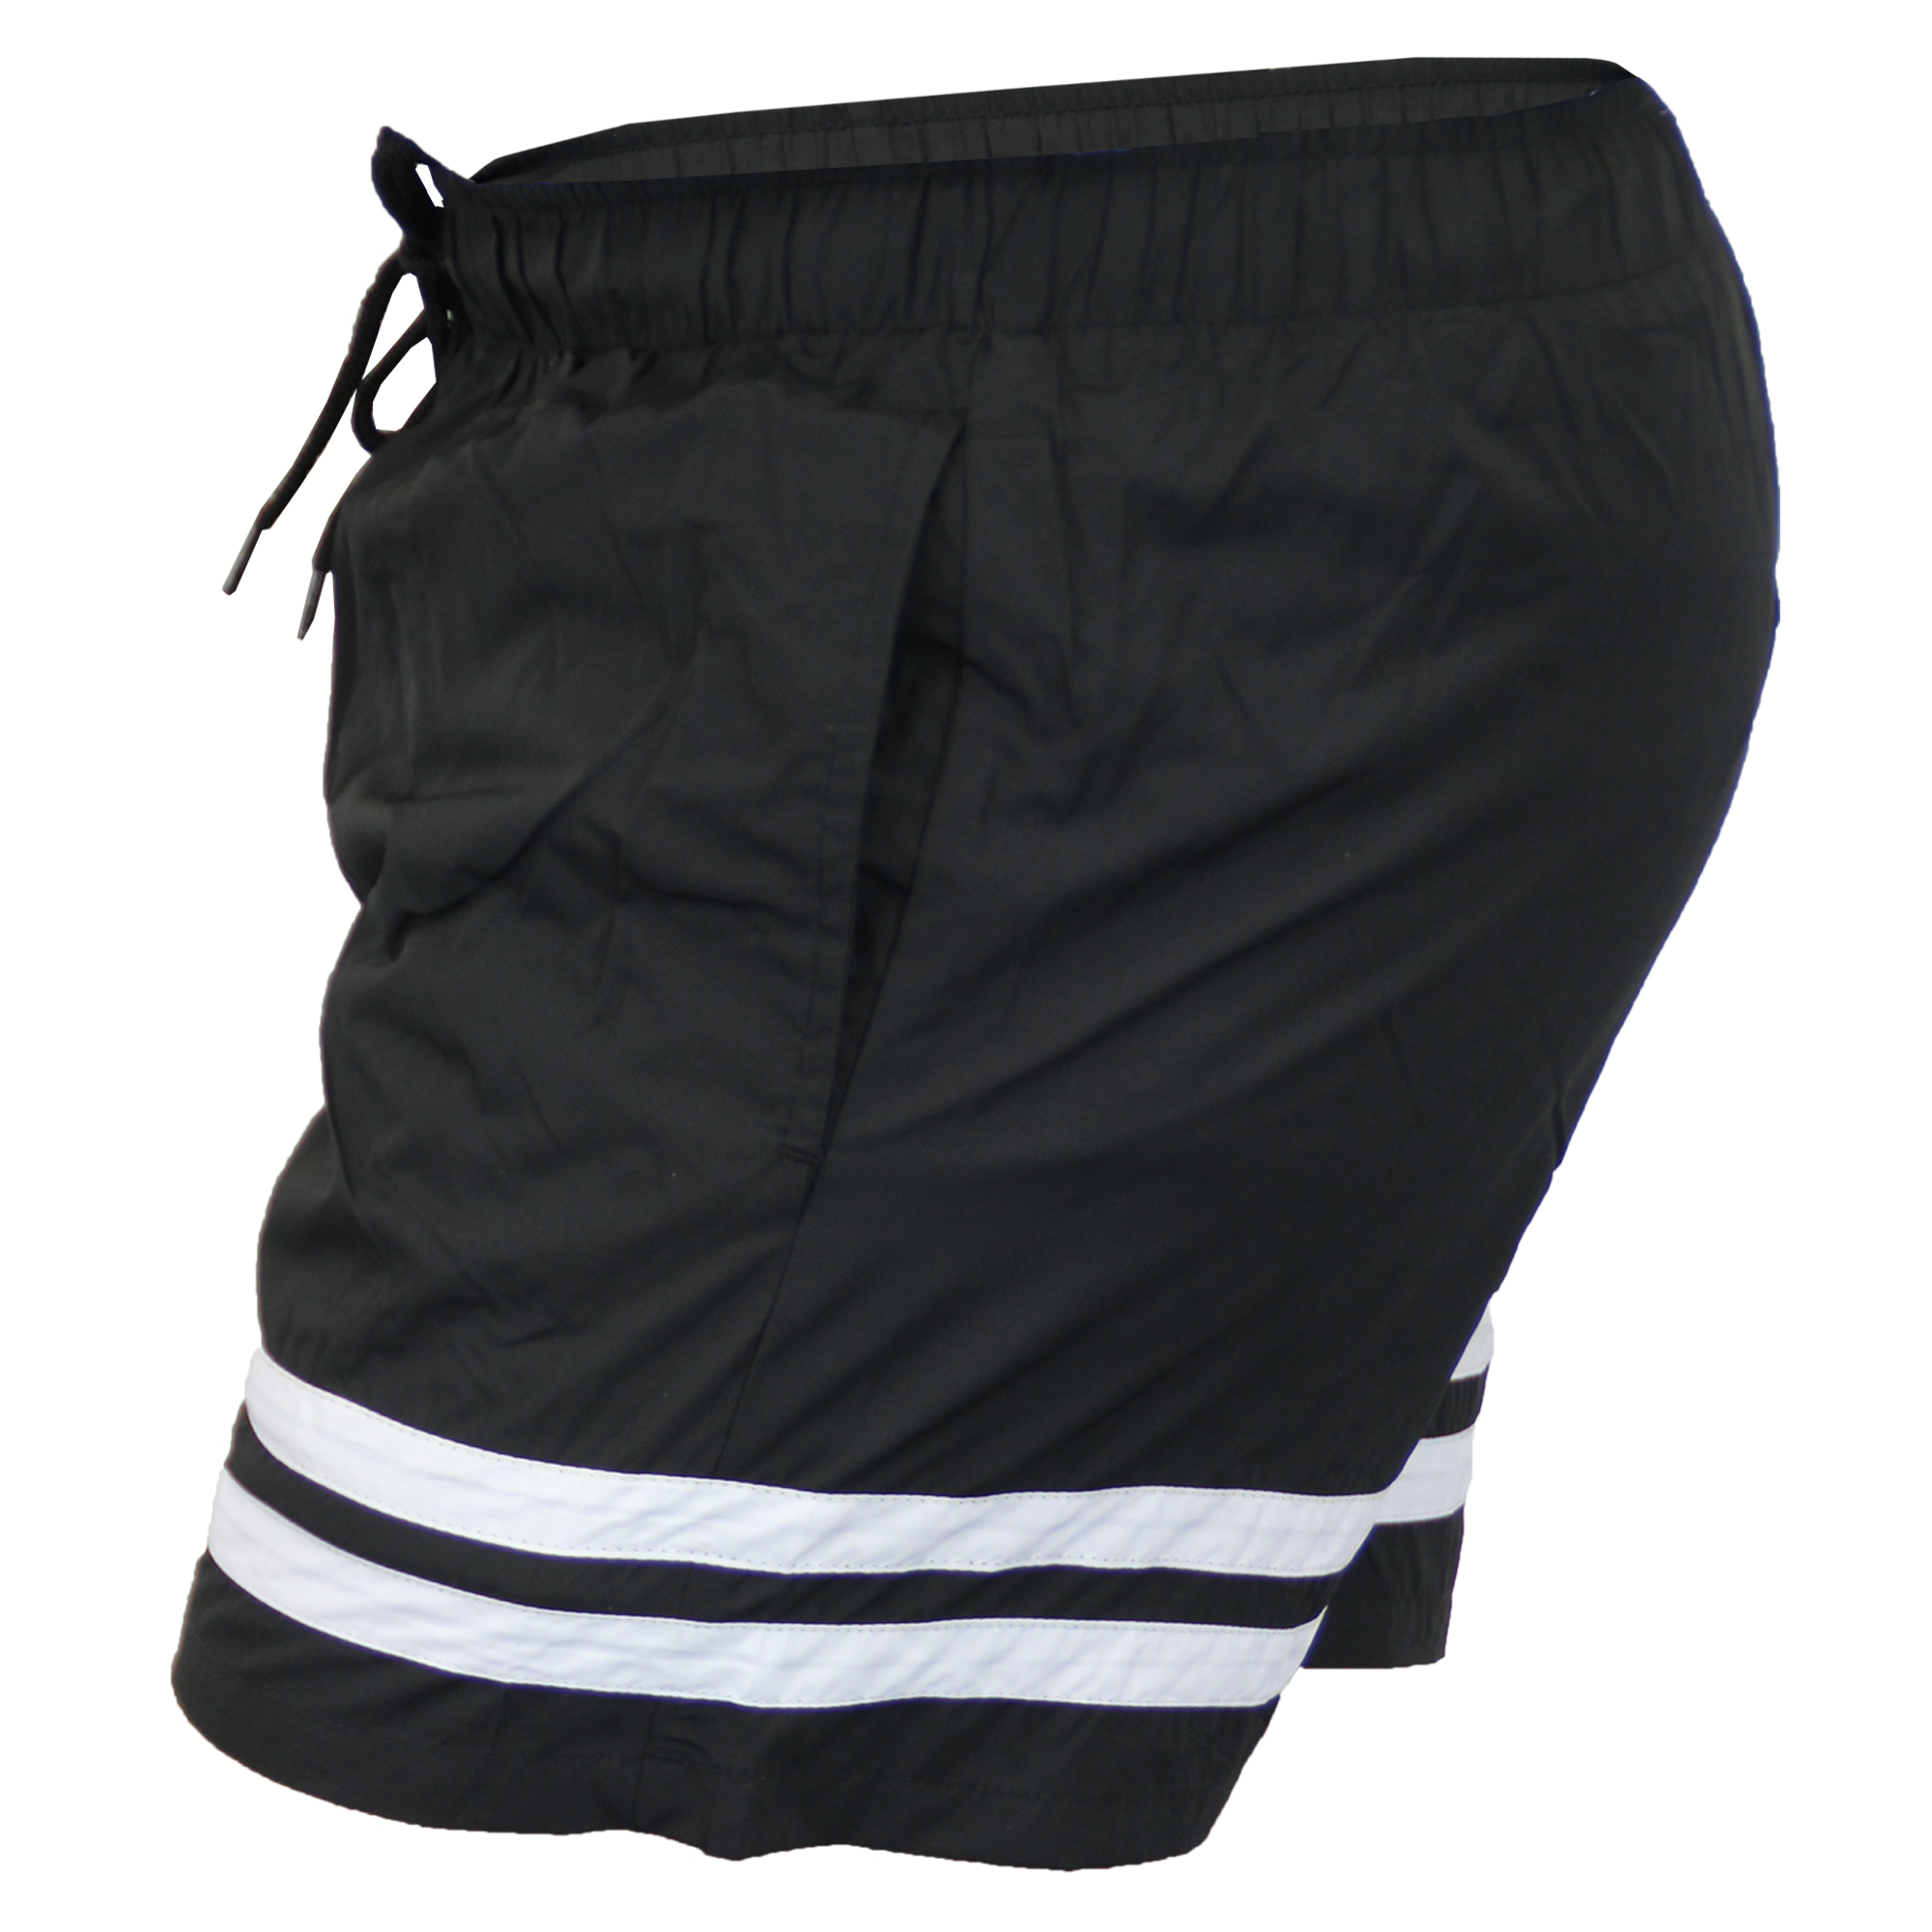 Mens-Swim-Board-Shorts-By-Brave-Soul-Mesh-Lined-New thumbnail 3